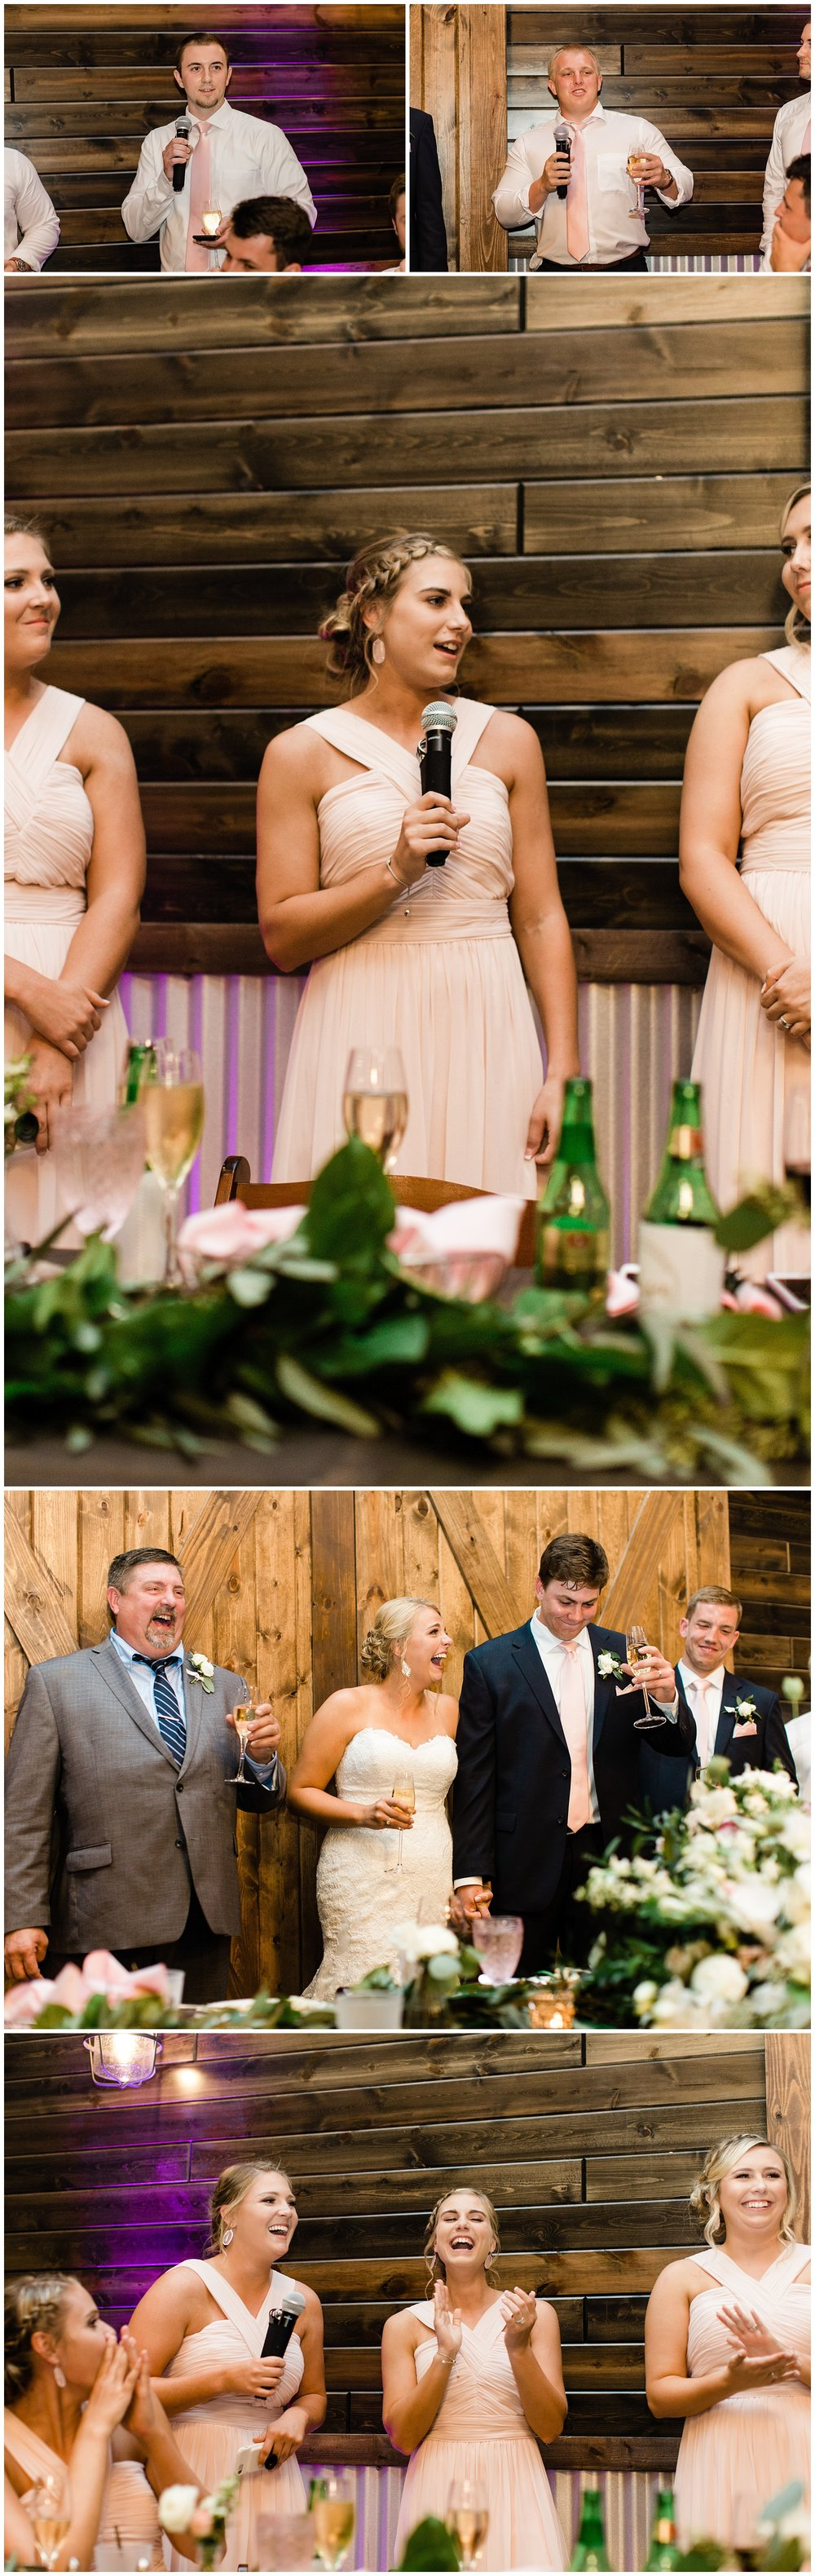 Peach_Creek_Ranch_Wedding_0037.jpg